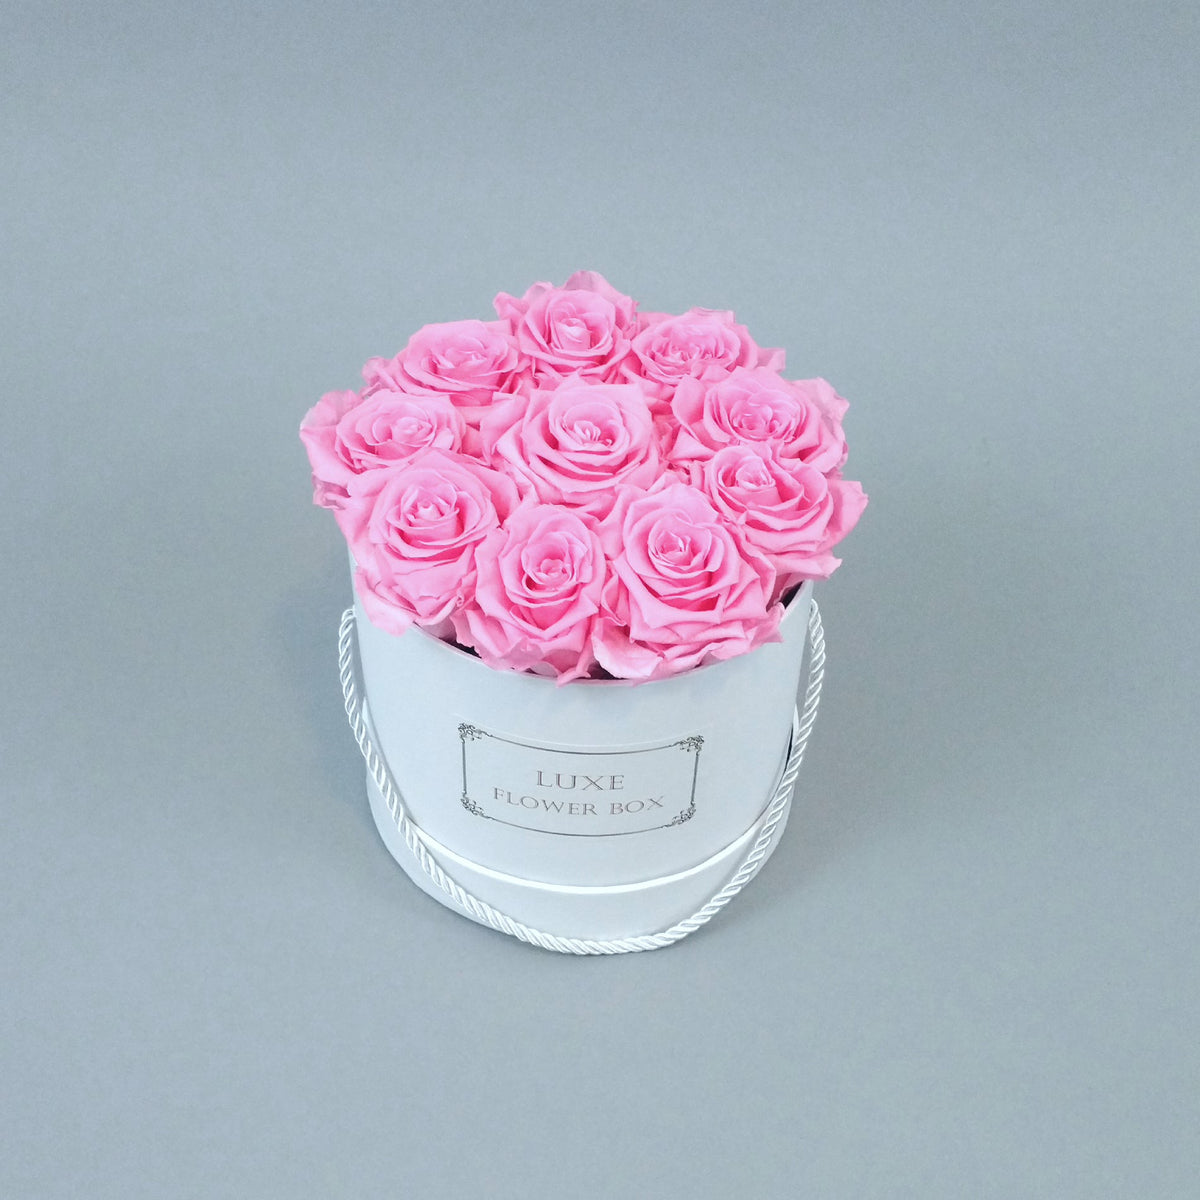 Small Round Box - Customize it! - Last more than 1 year